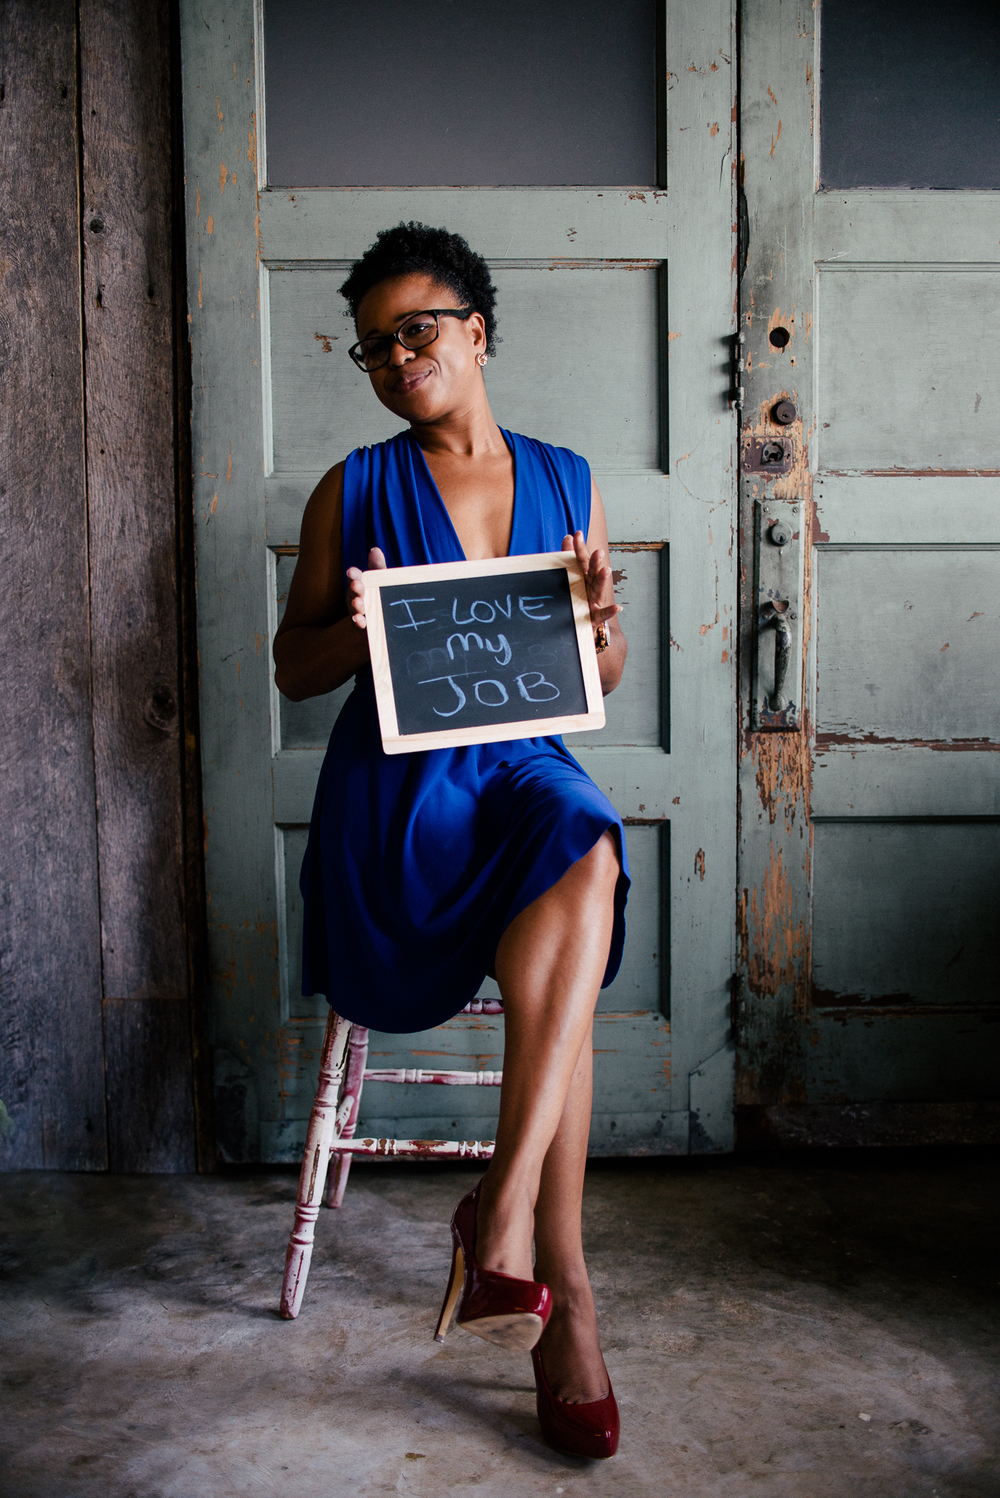 We are Empowerment | Aloha Studios & Shii Eyes Photography | Knoxville TN